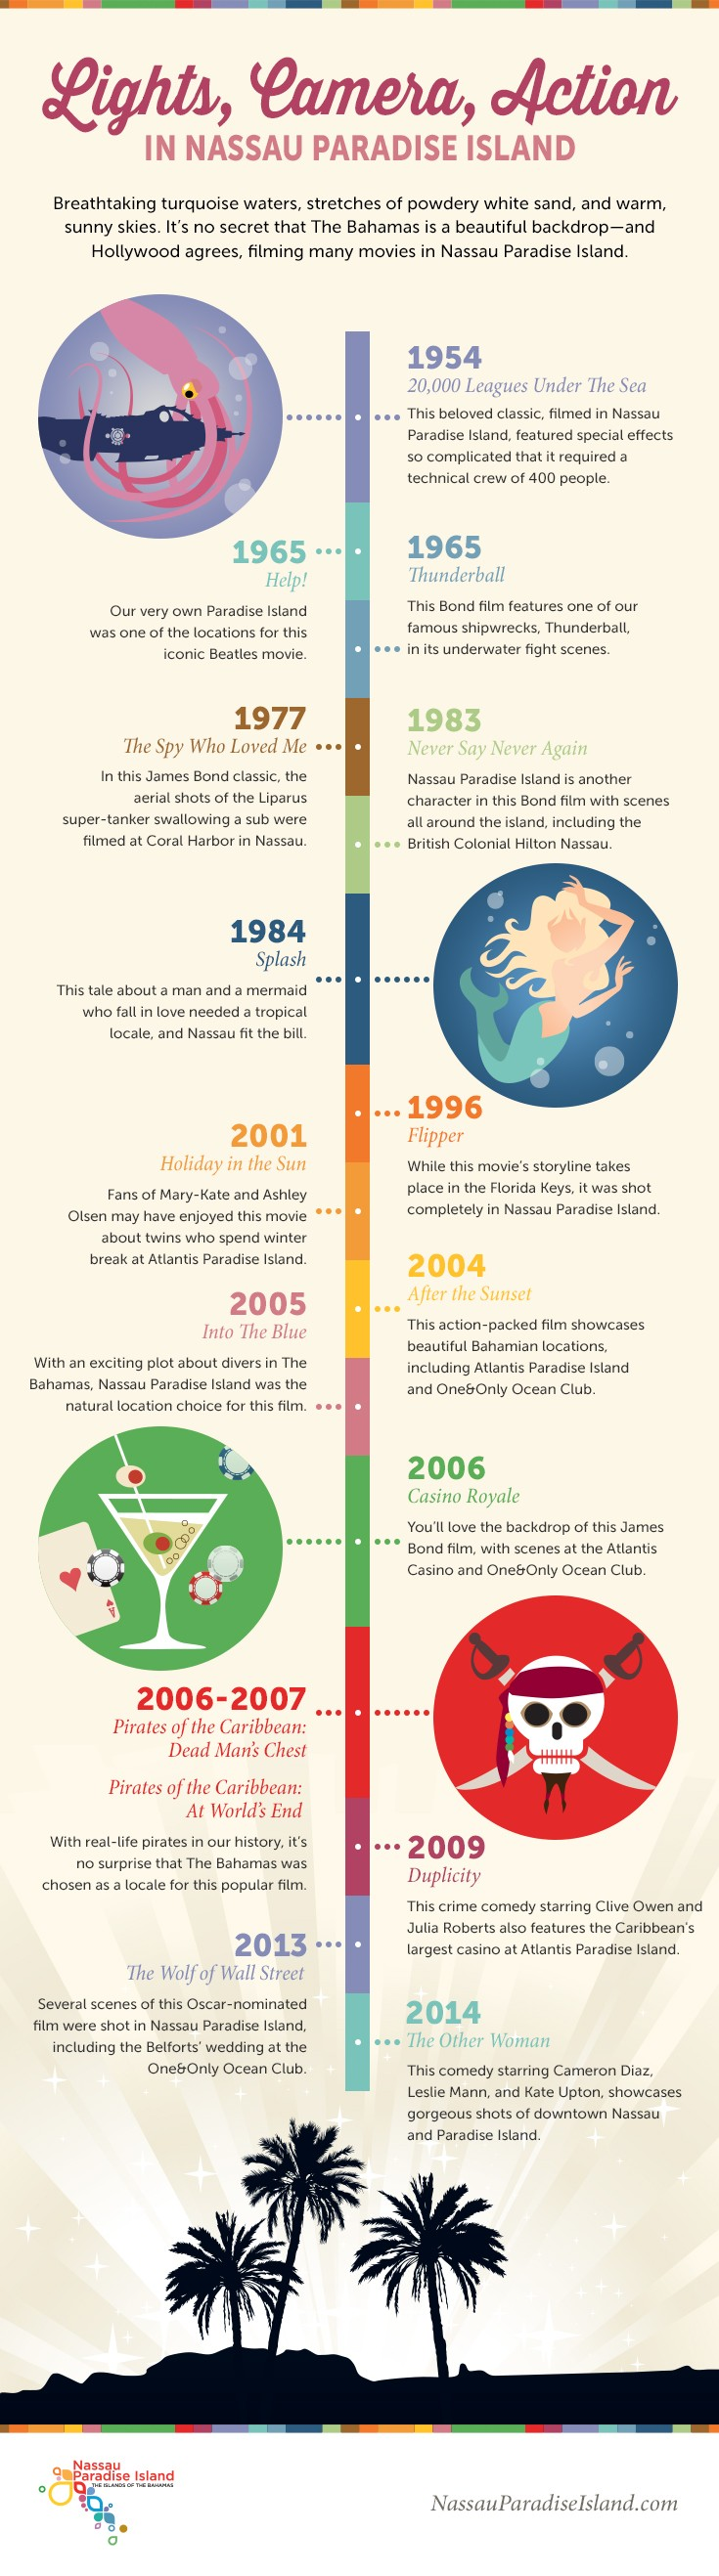 Infographic about movies made in Nassau Paradise Island, The Bahamas